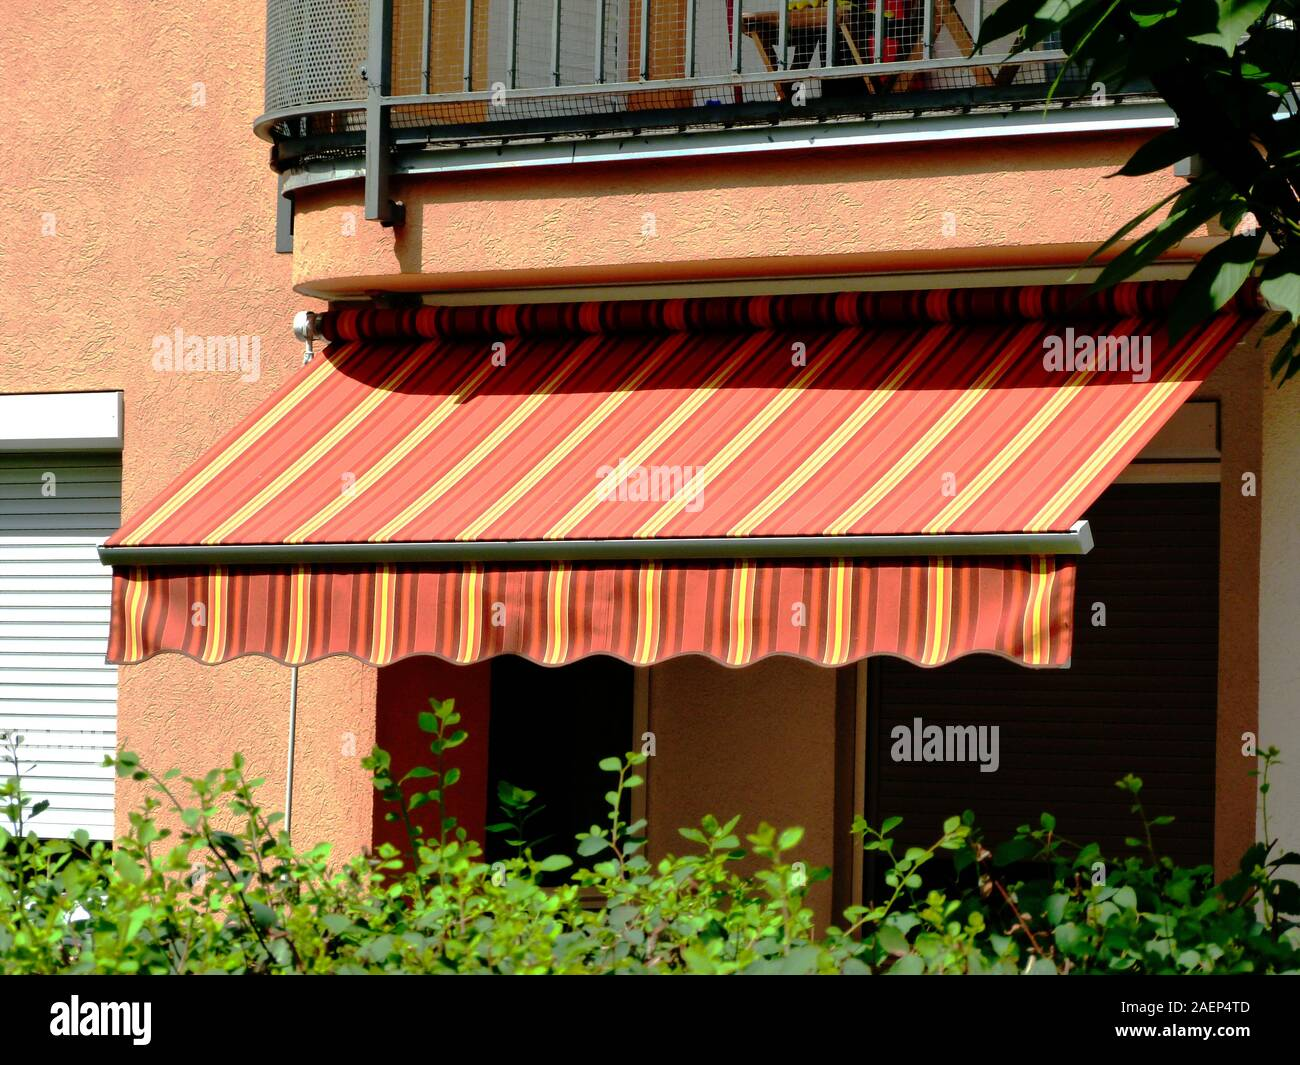 Awning Screen